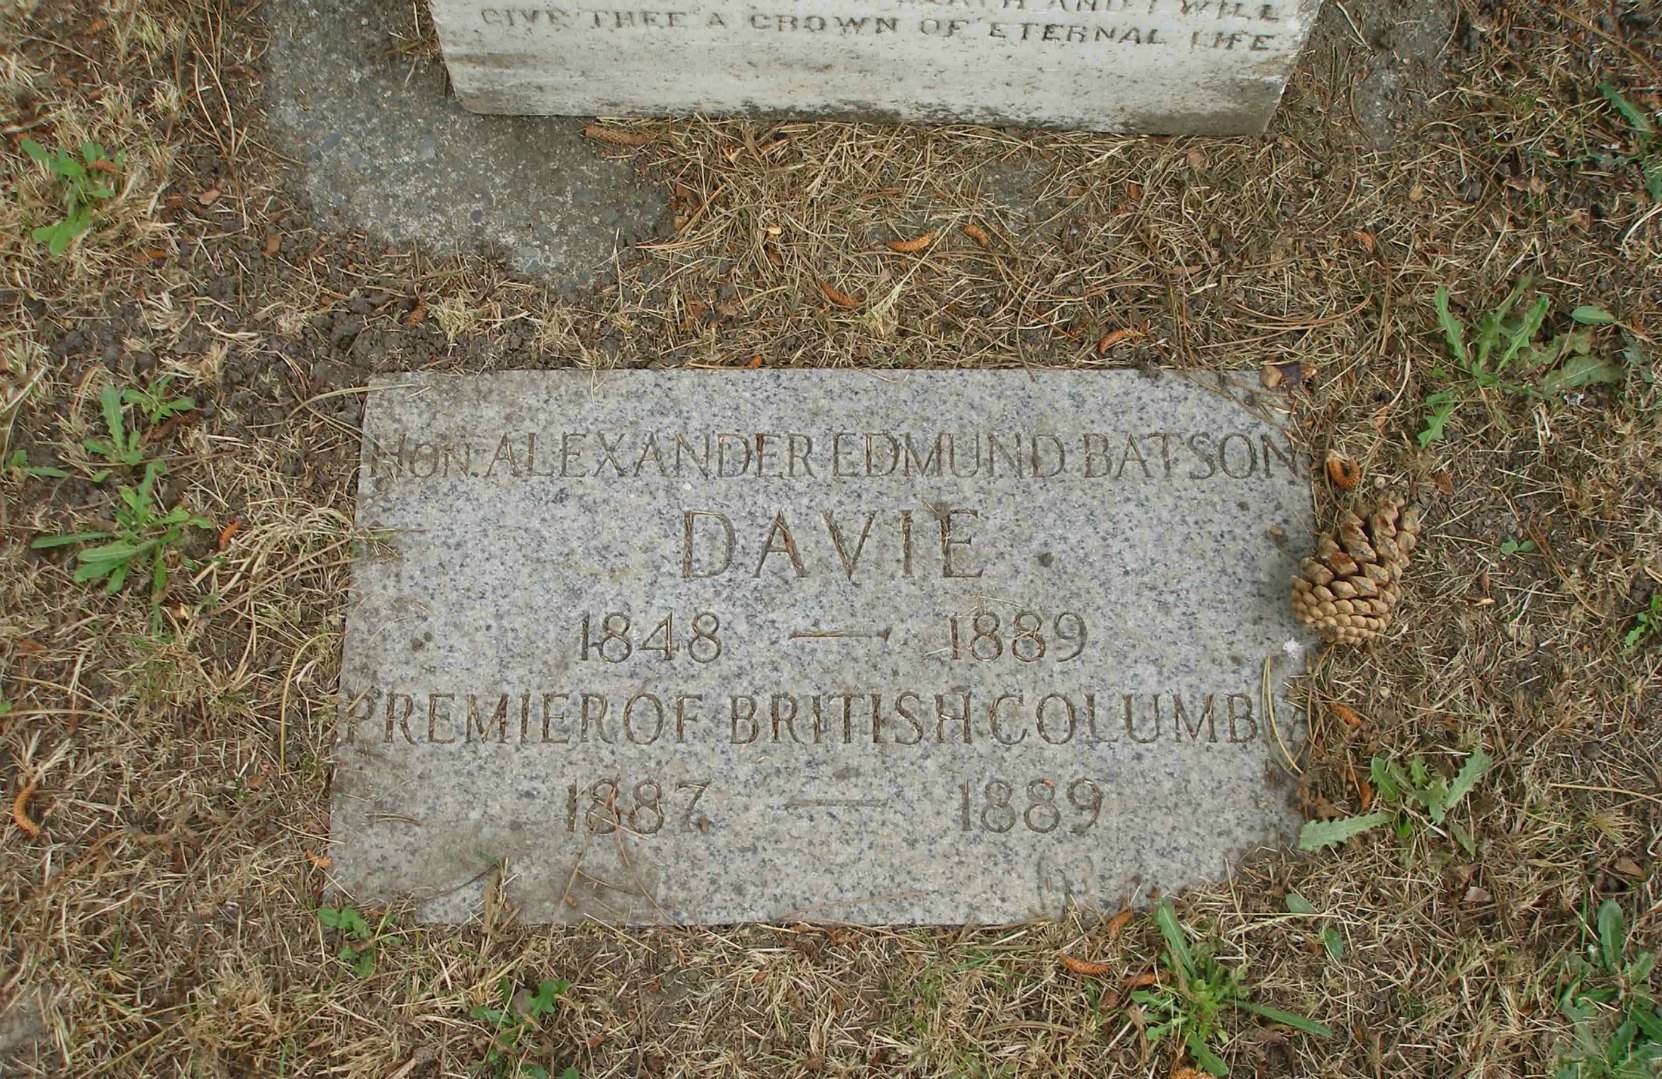 This newer grave marker has been placed in the ground at the base of Alexander Davie's original grave marker.